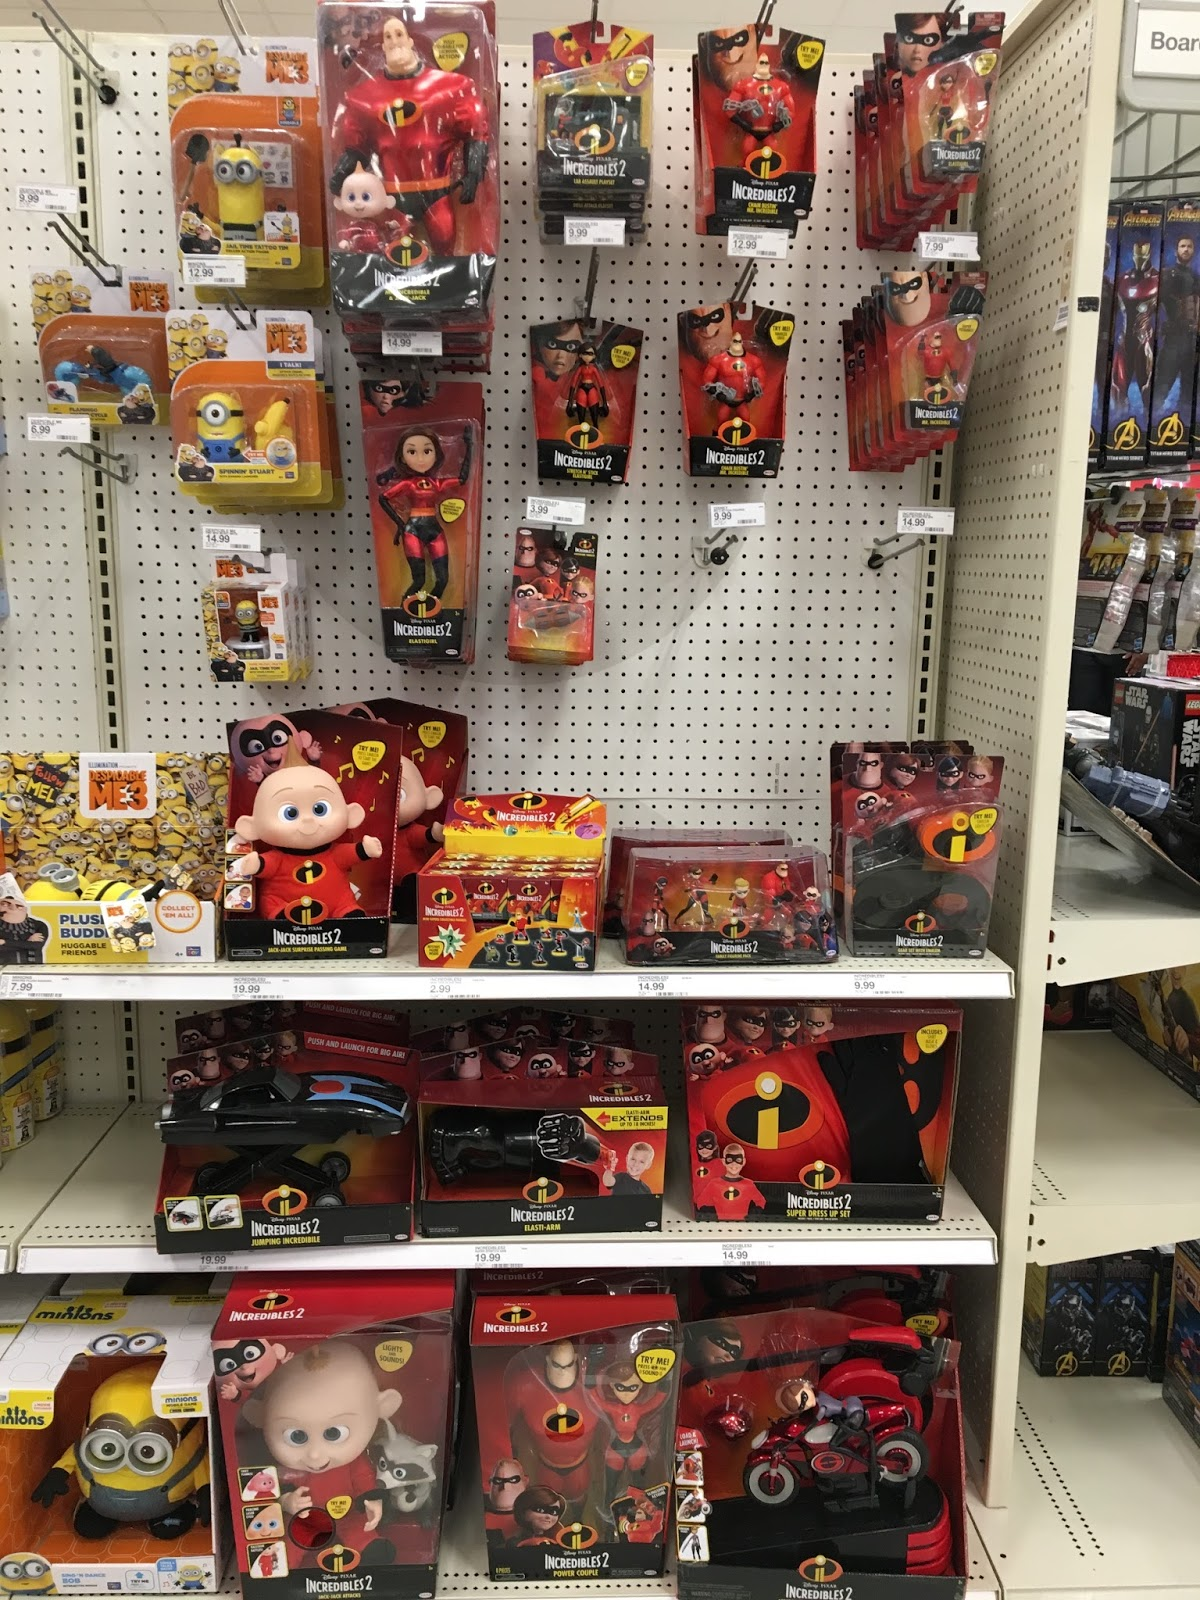 pixar incredibles 2 toys release date on shelf